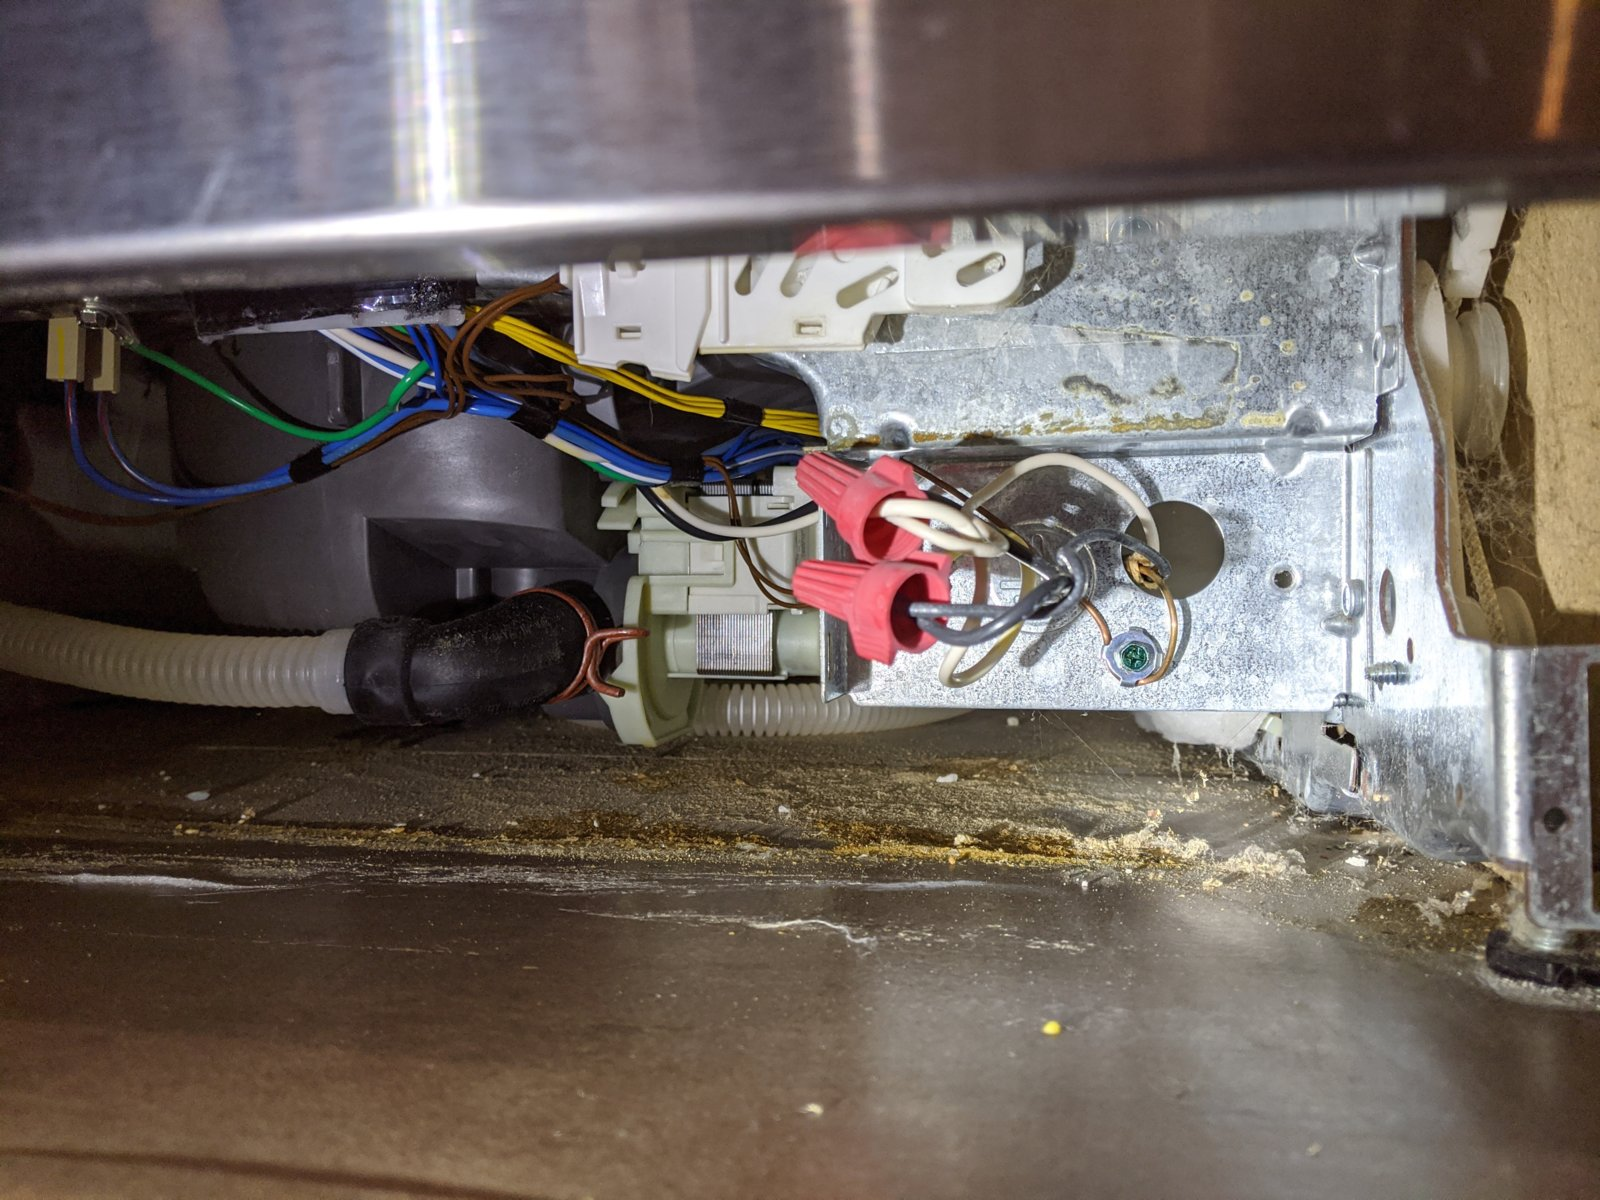 Fixed Kitchenaid Dishwasher Kuds35fxss8 No Power Can T Find Fuse Location Applianceblog Repair Forums